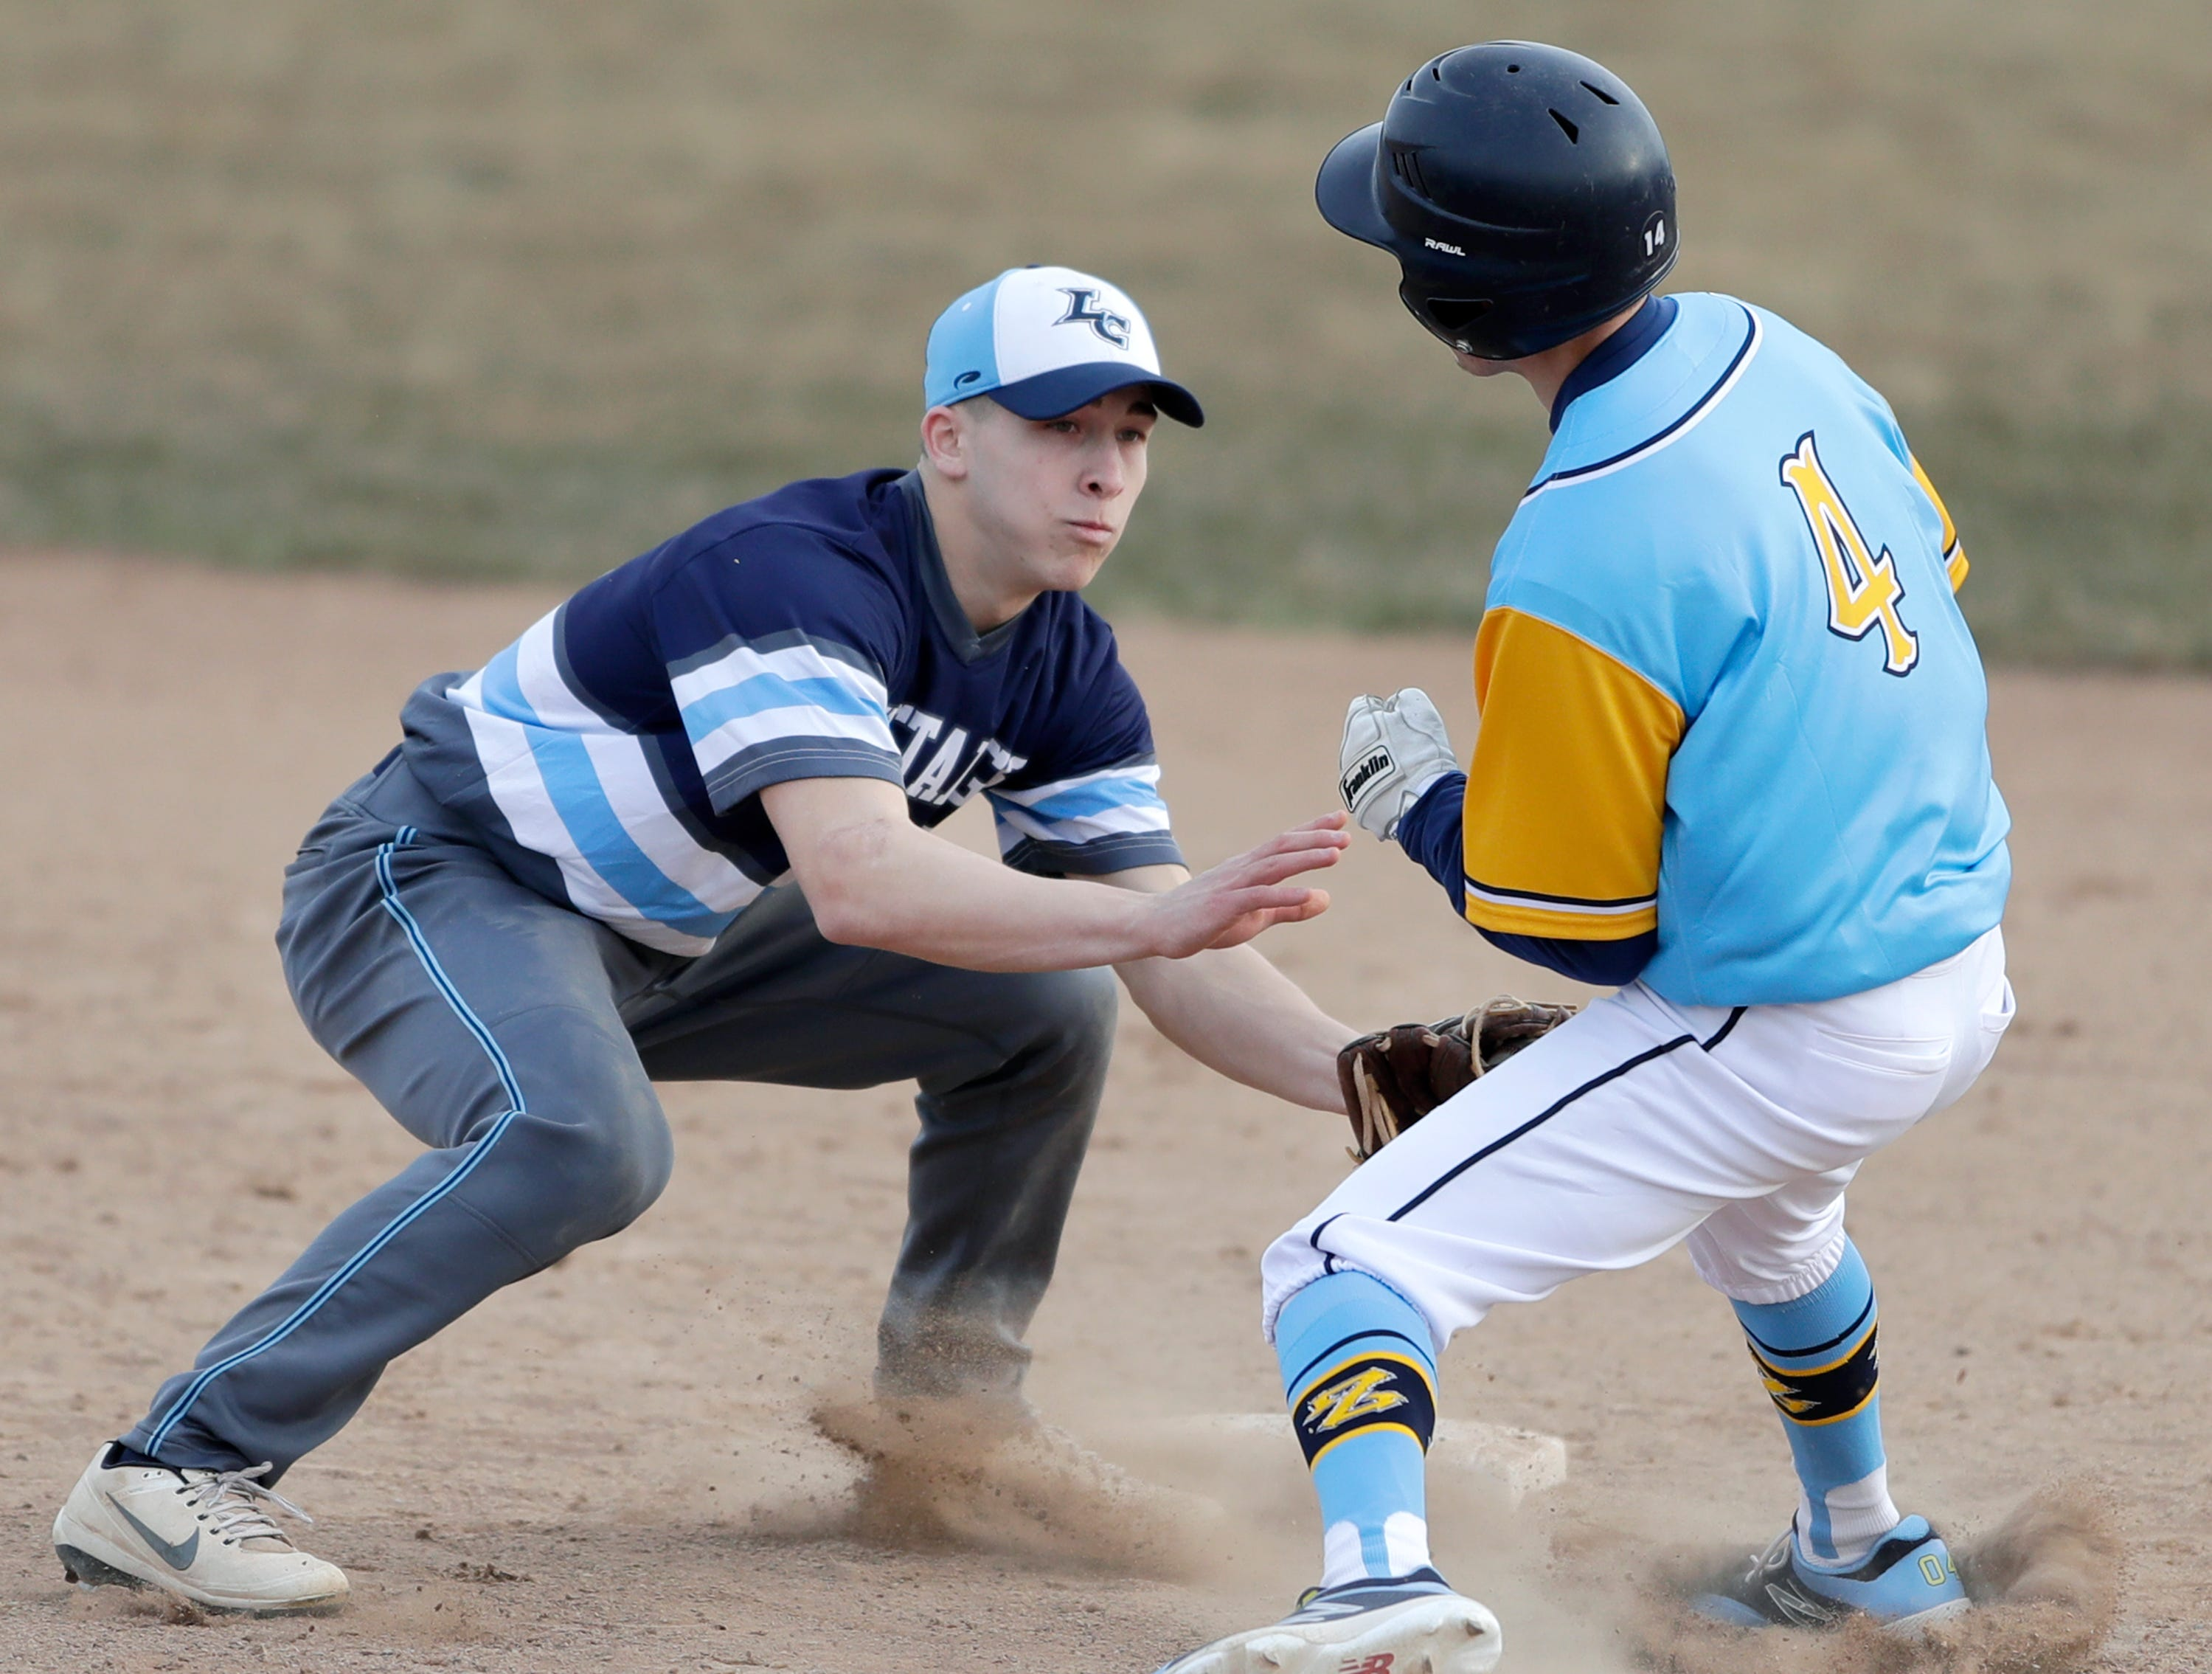 Little Chute High School's #21 Isaac Vandeurzen tags St. Mary Catholic High School's #4 Drew Zimmer at second base during their baseball game on Friday, March 29, 2019, in Neenah, Wis. Little Chute defeated St. Mary Catholic 2 to 1.Wm. Glasheen/USA TODAY NETWORK-Wisconsin.